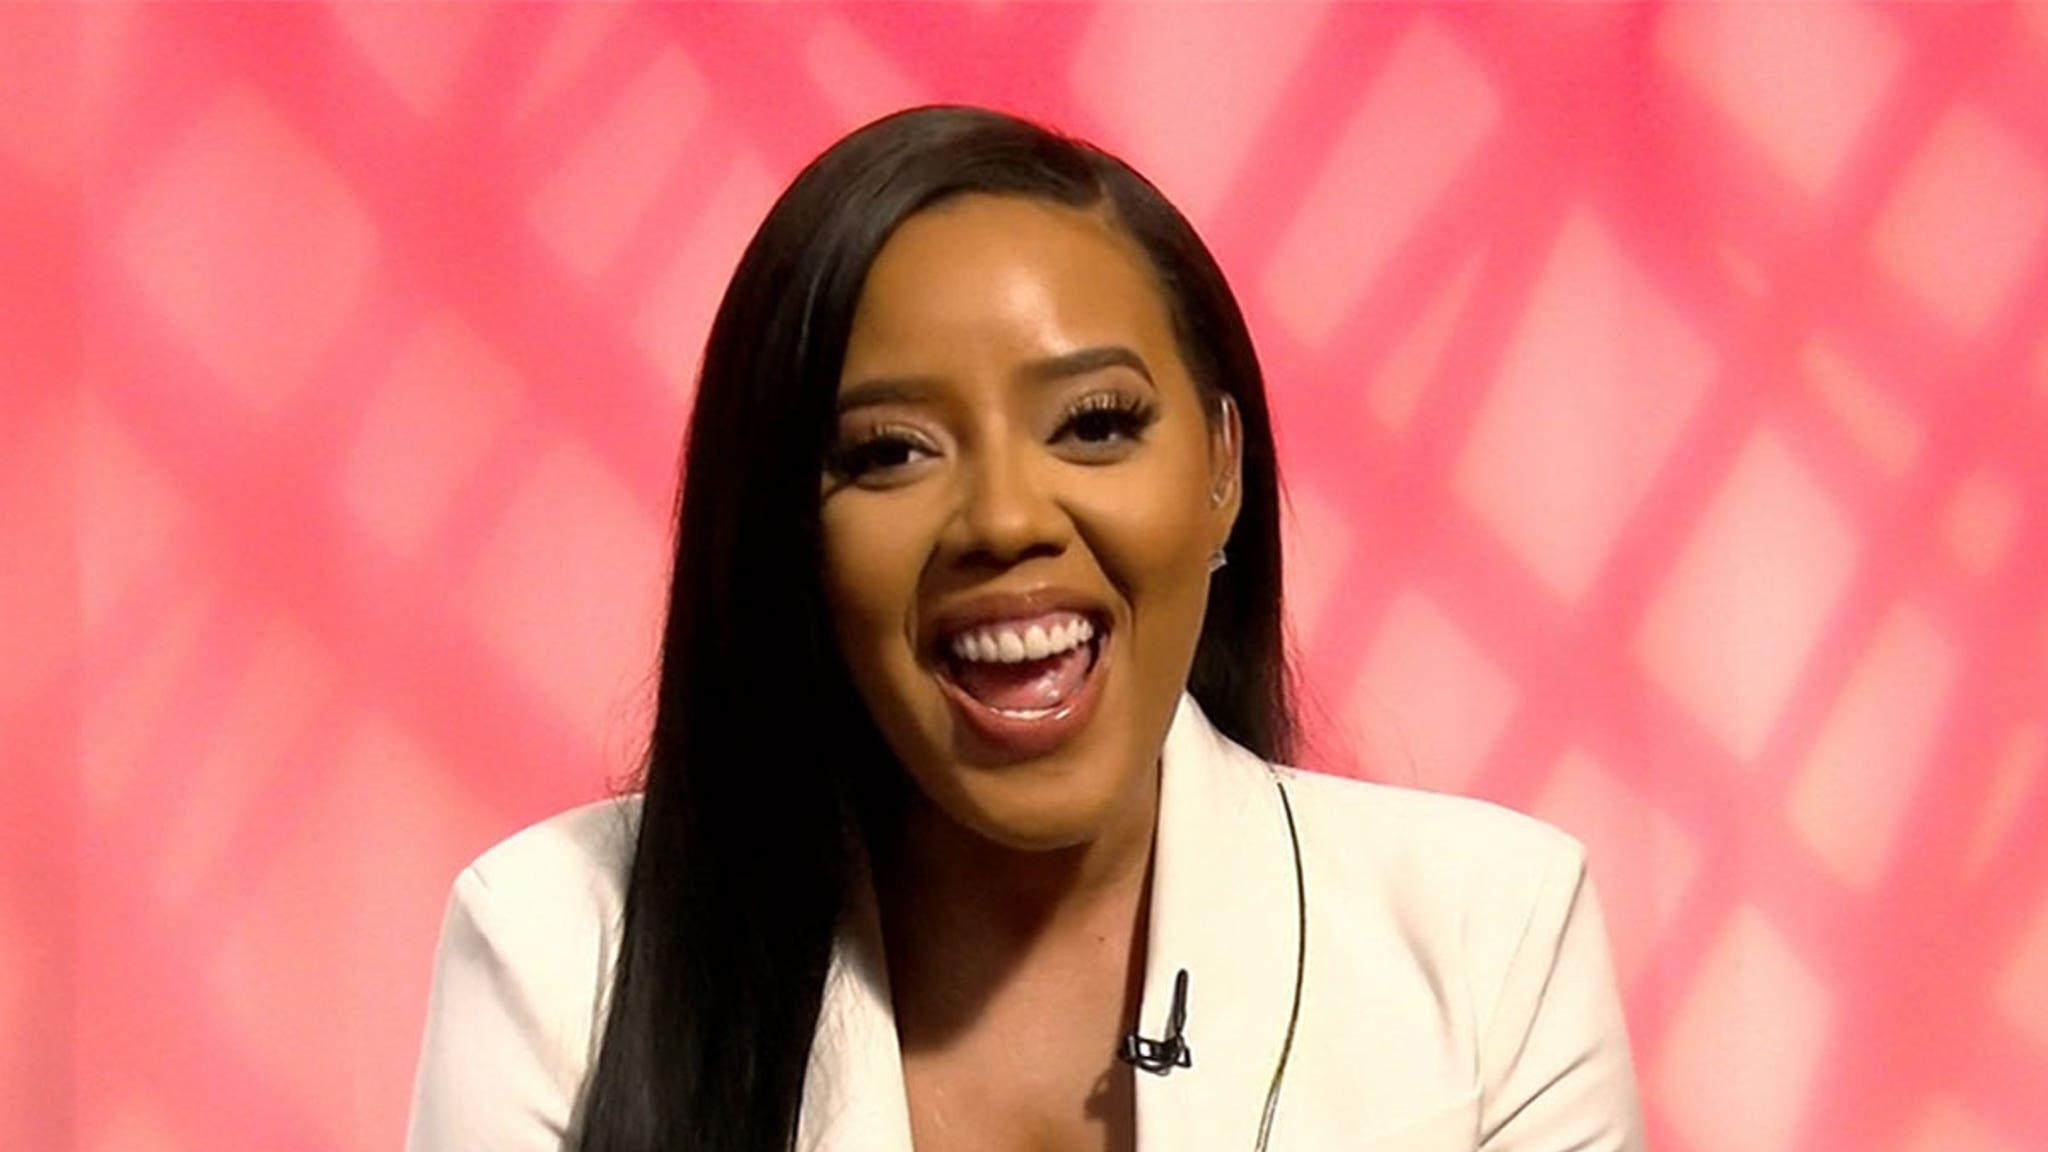 Angela Simmons Says She's Not Dating Bow Wow Right Now